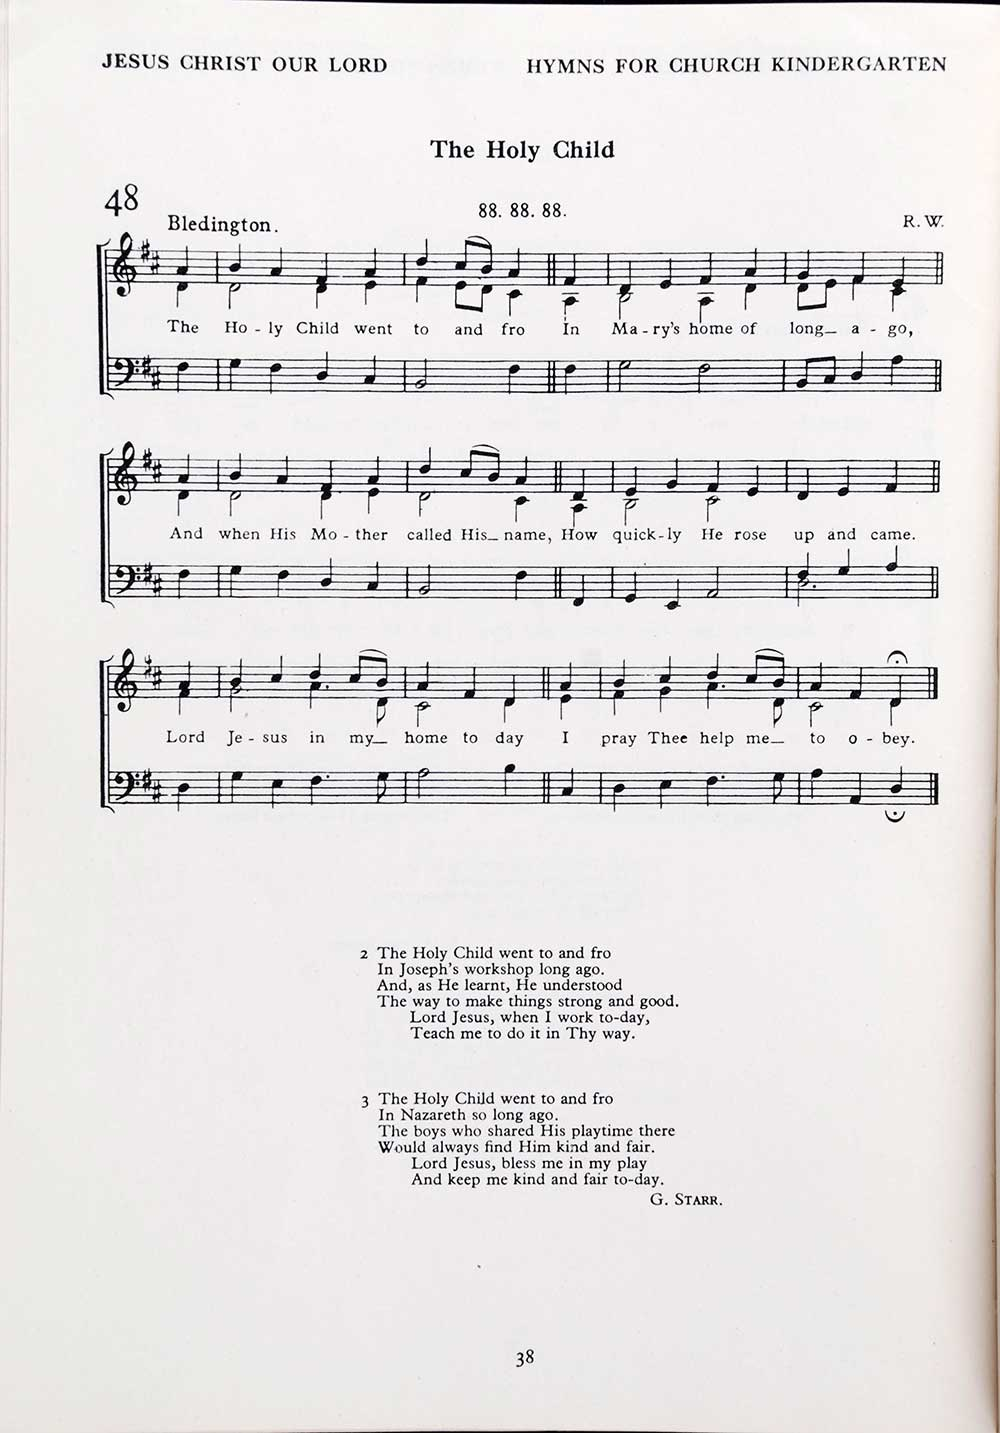 Margaret Cropper and A.R.B. Wylam (editors). <em>Hymns and songs for the church kindergarten.</em> London: National Society, Central Council of the Church for Religious Education, [1939]